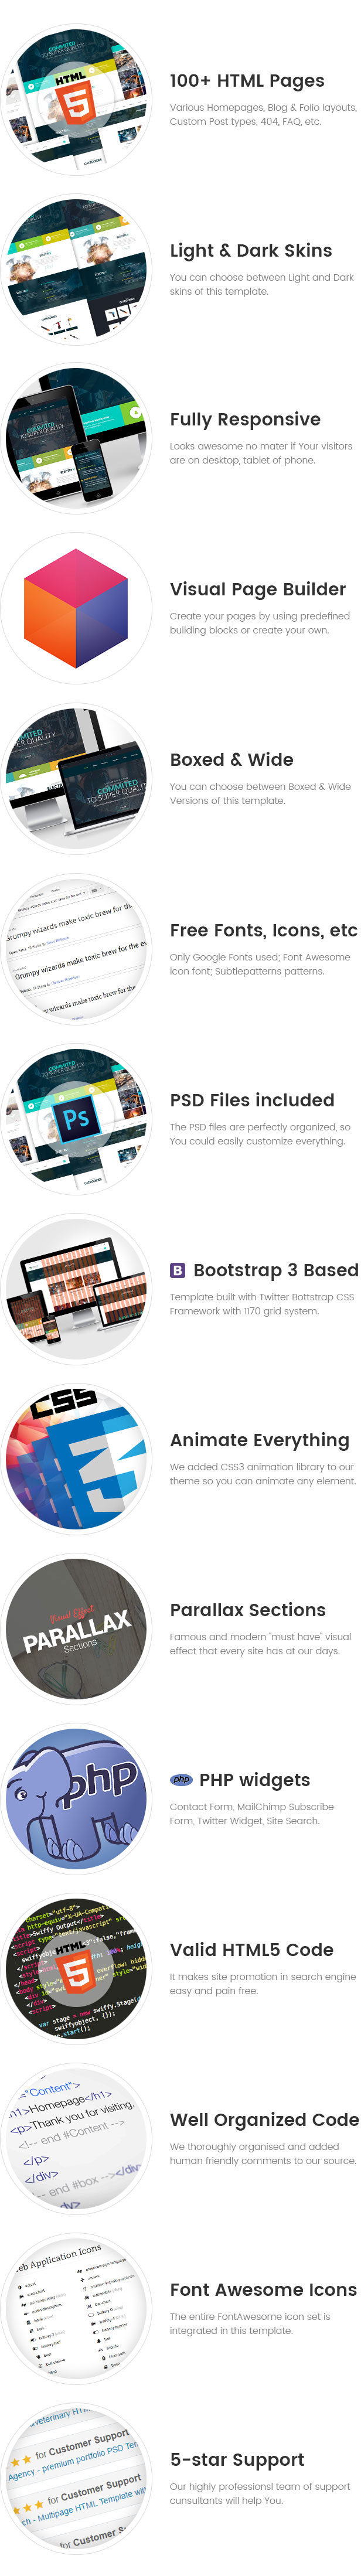 Electix - Industrial and Electronic Equipment Manufacturing HTML Template